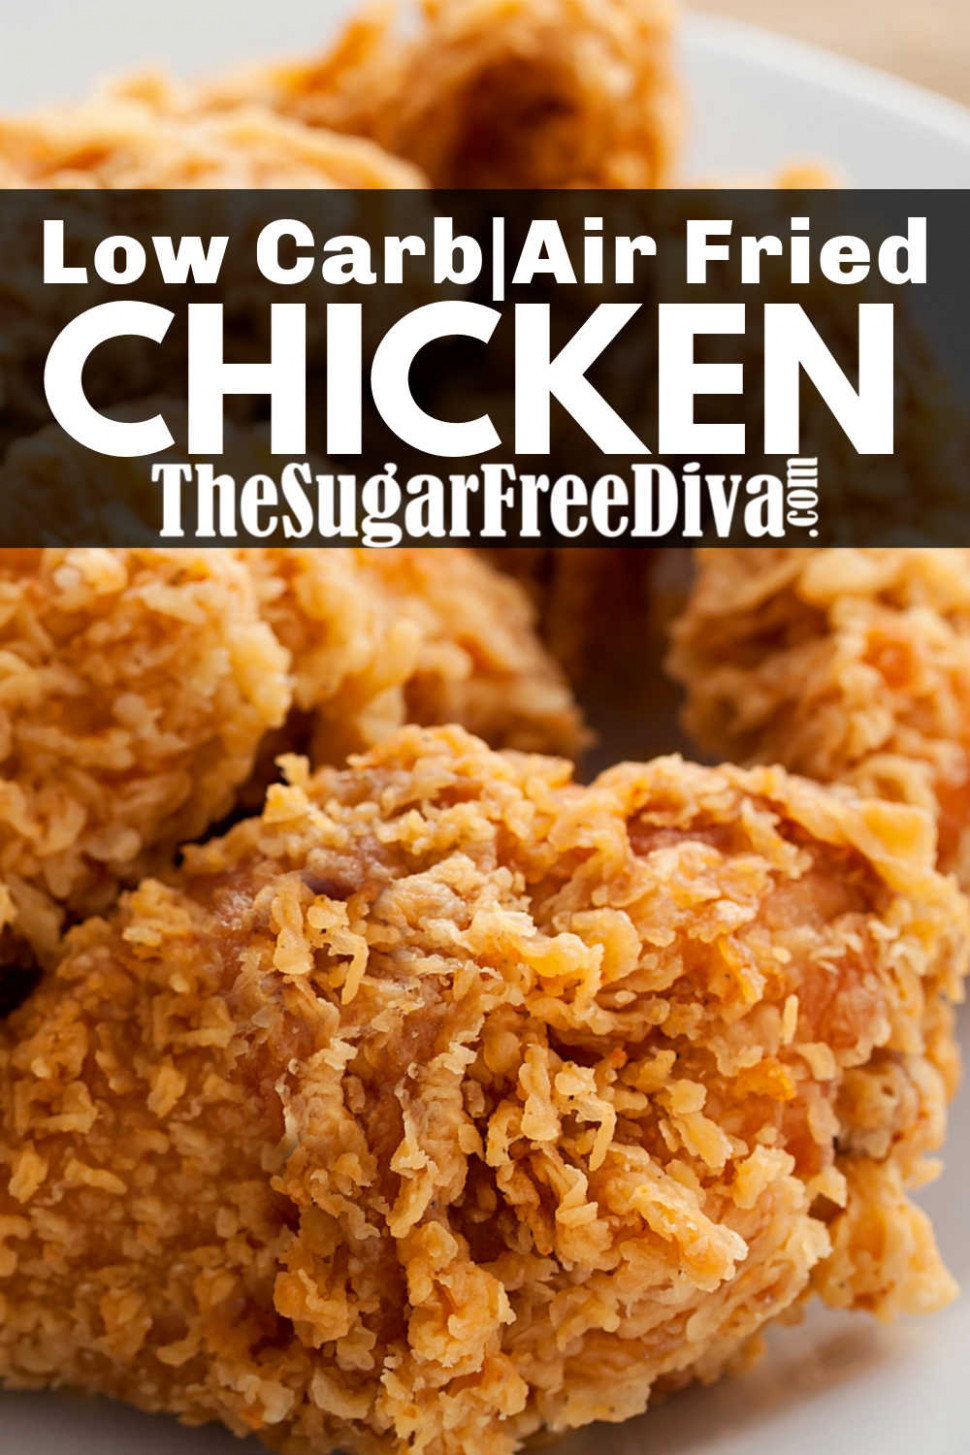 The Best Tasting Low Carb Air Fried Chicken Recipe - Air Fryer Xl Recipes Chicken